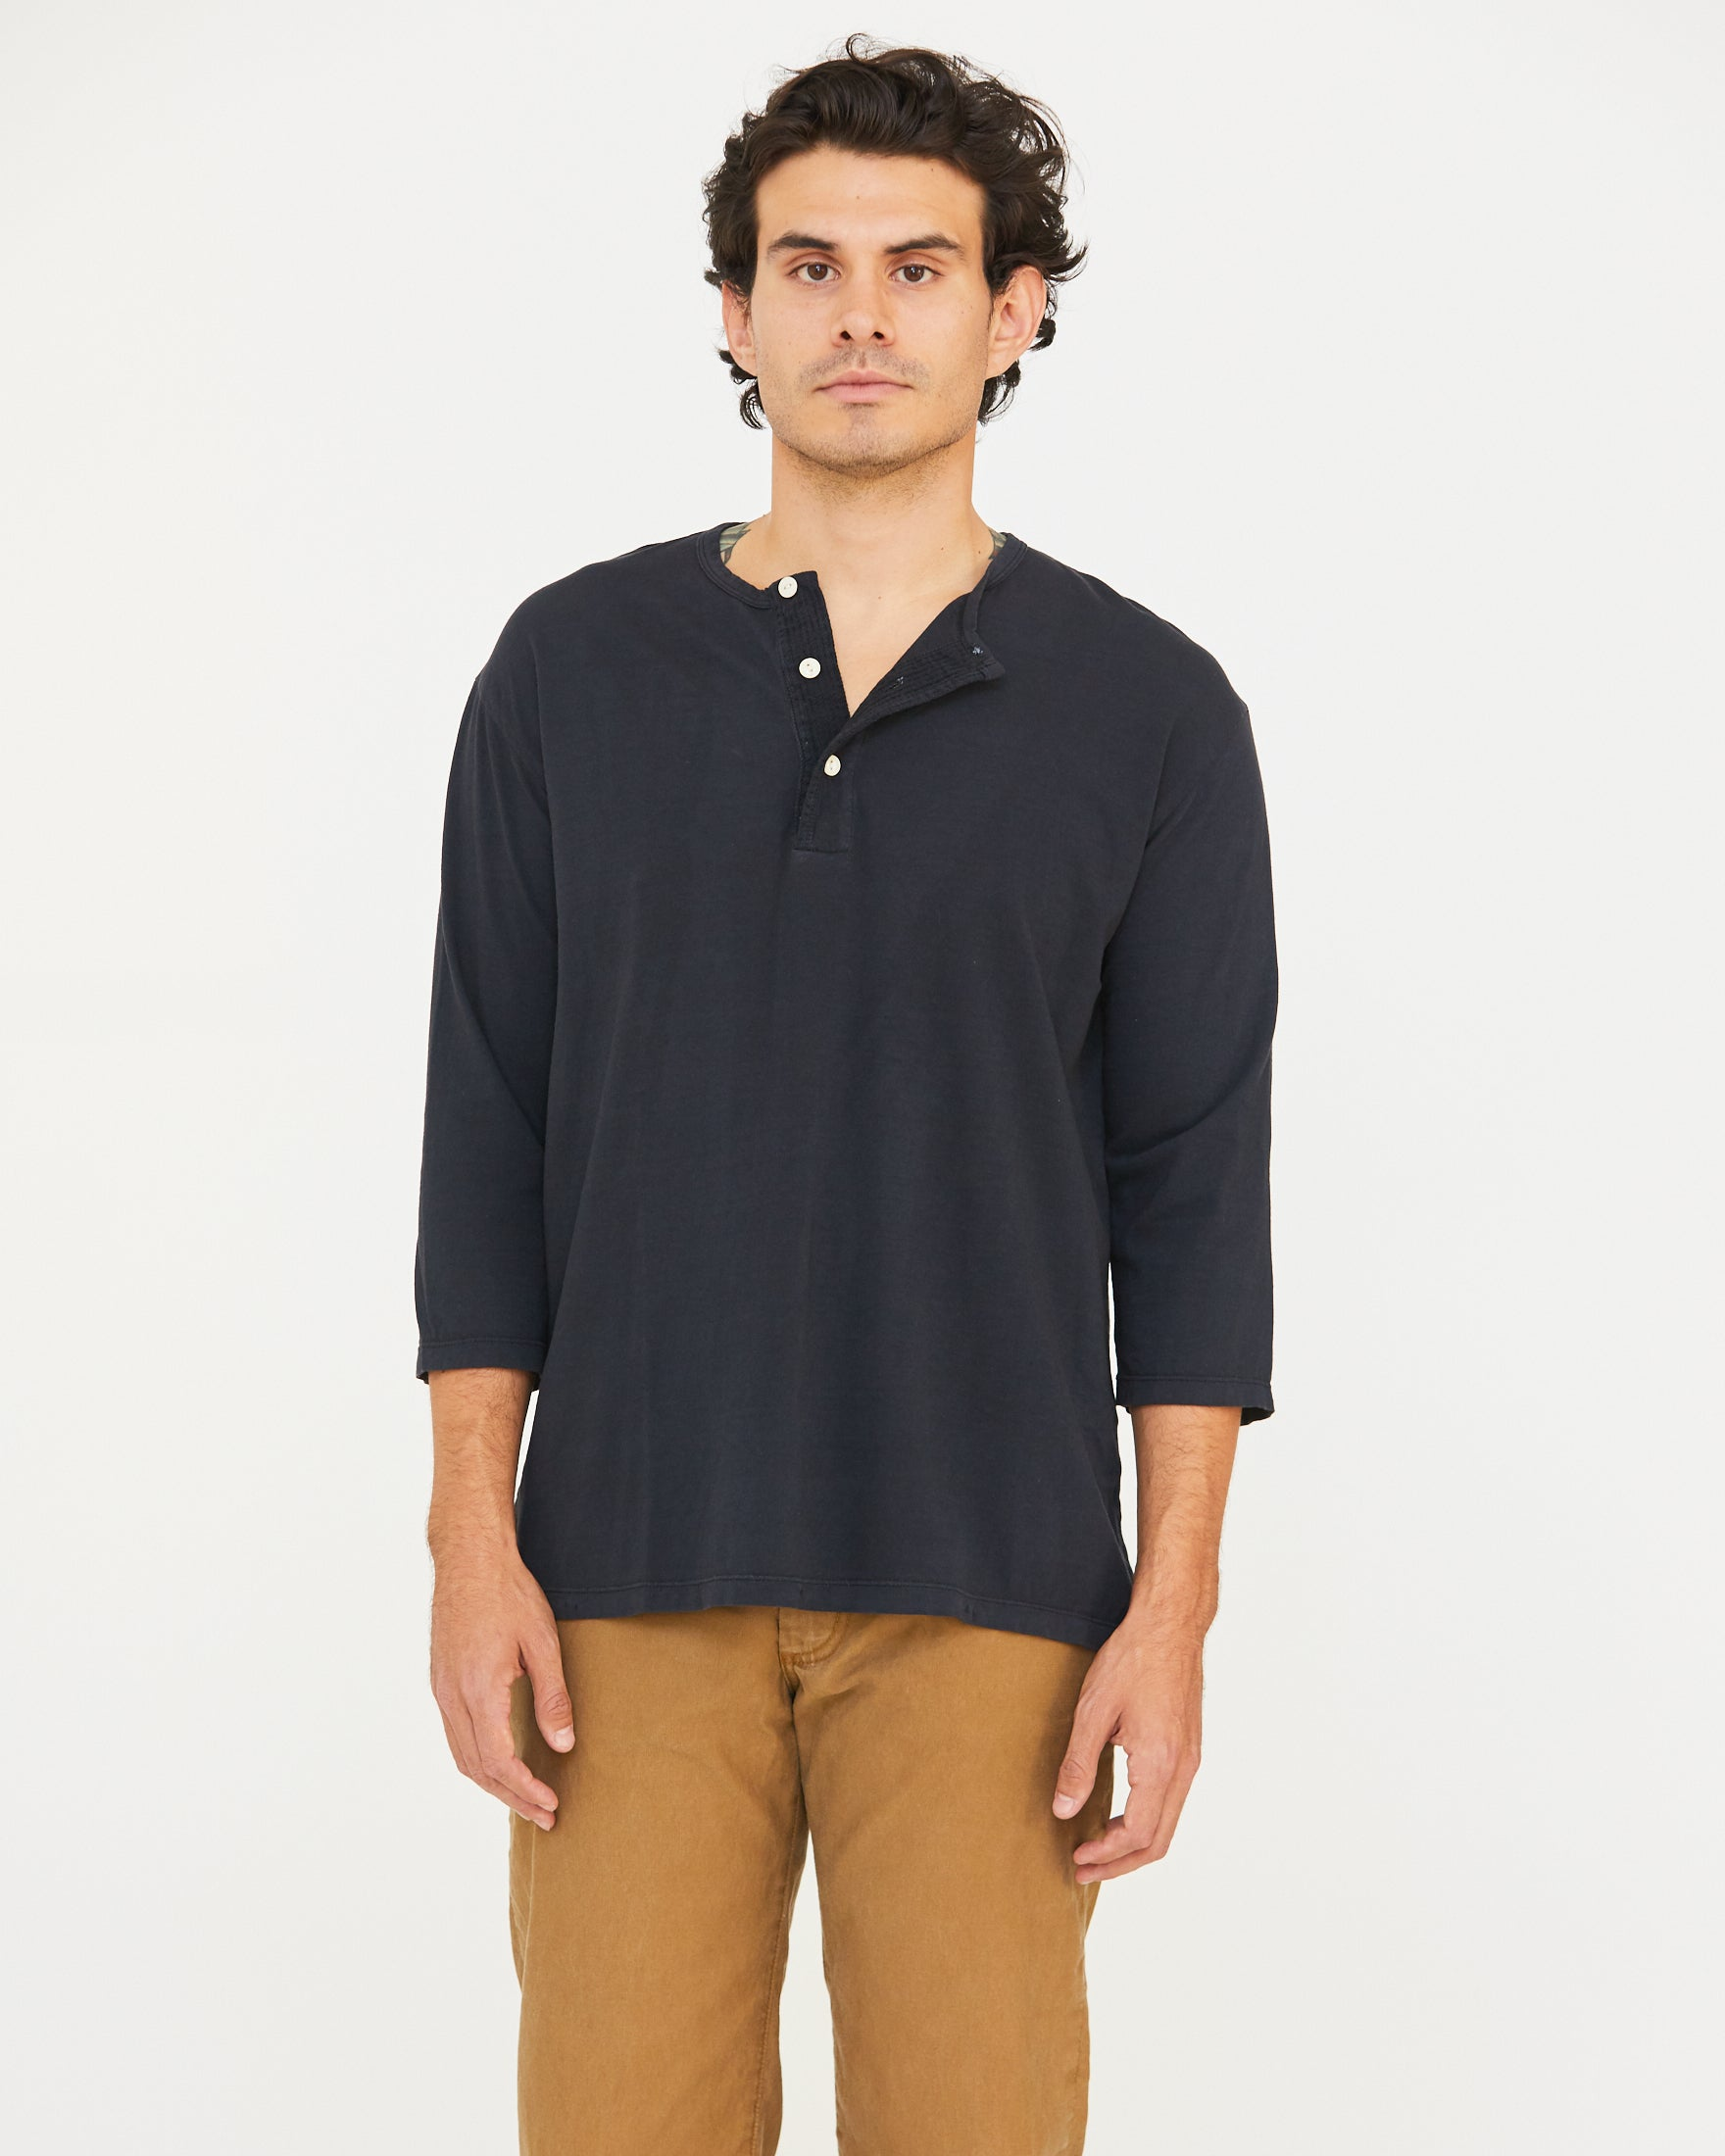 DAVIS 3/4 SLEEVE HENLEY - MIDNIGHT